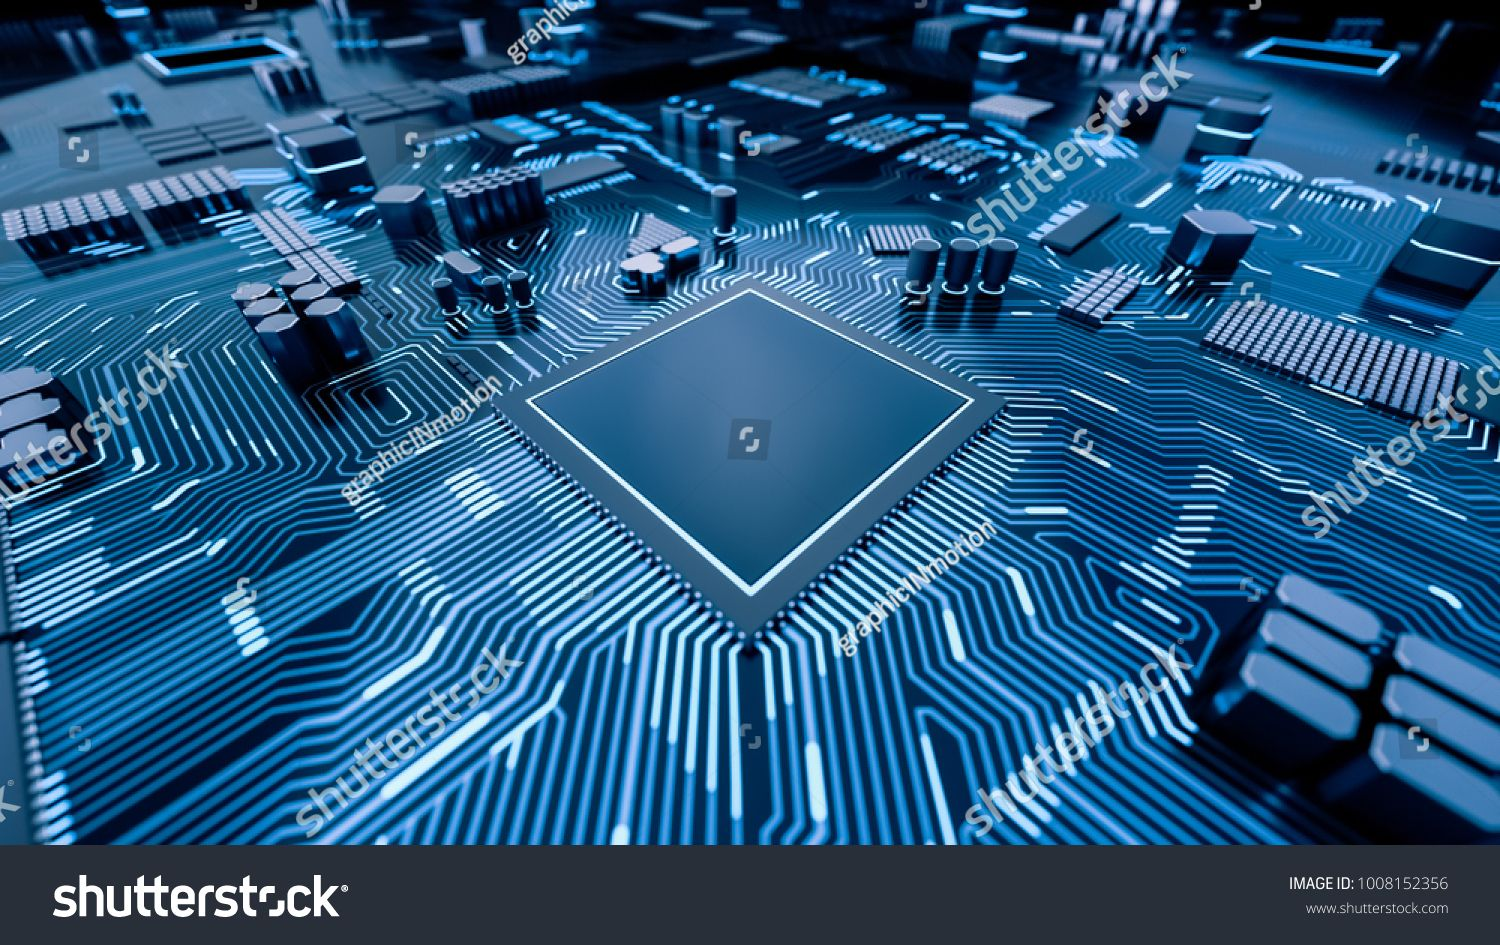 Cpu Chip On Motherboard Abstract 3d Render Of A Computer Processor Chip On A Circuit Board With Microchips An Computer Processors Computer Cpu City Wallpaper